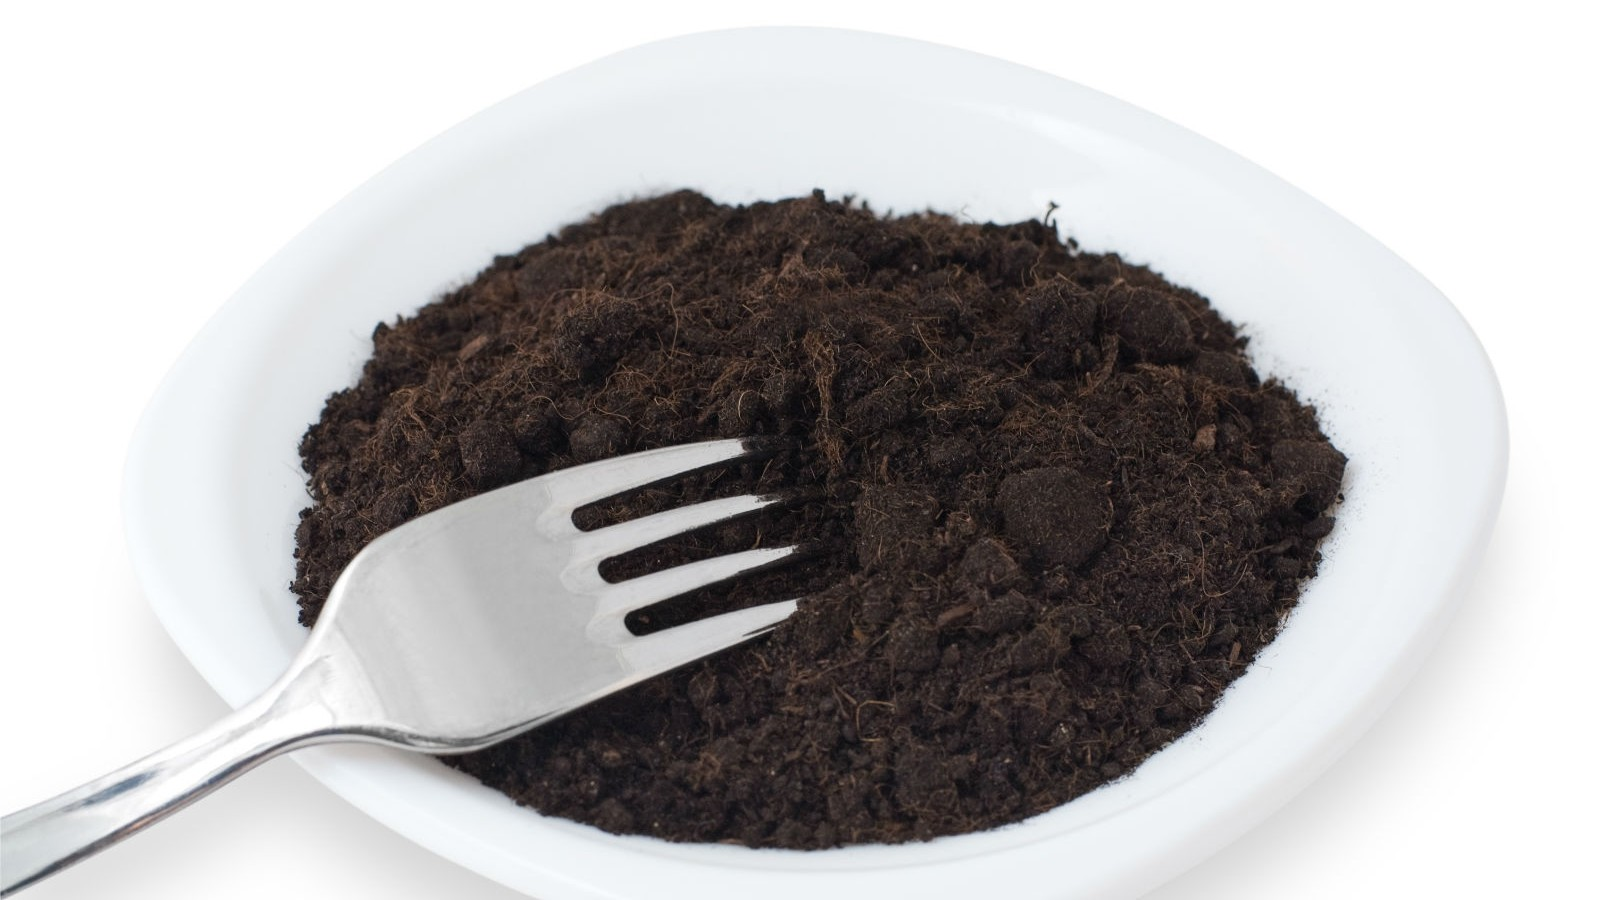 Plate of Dirt